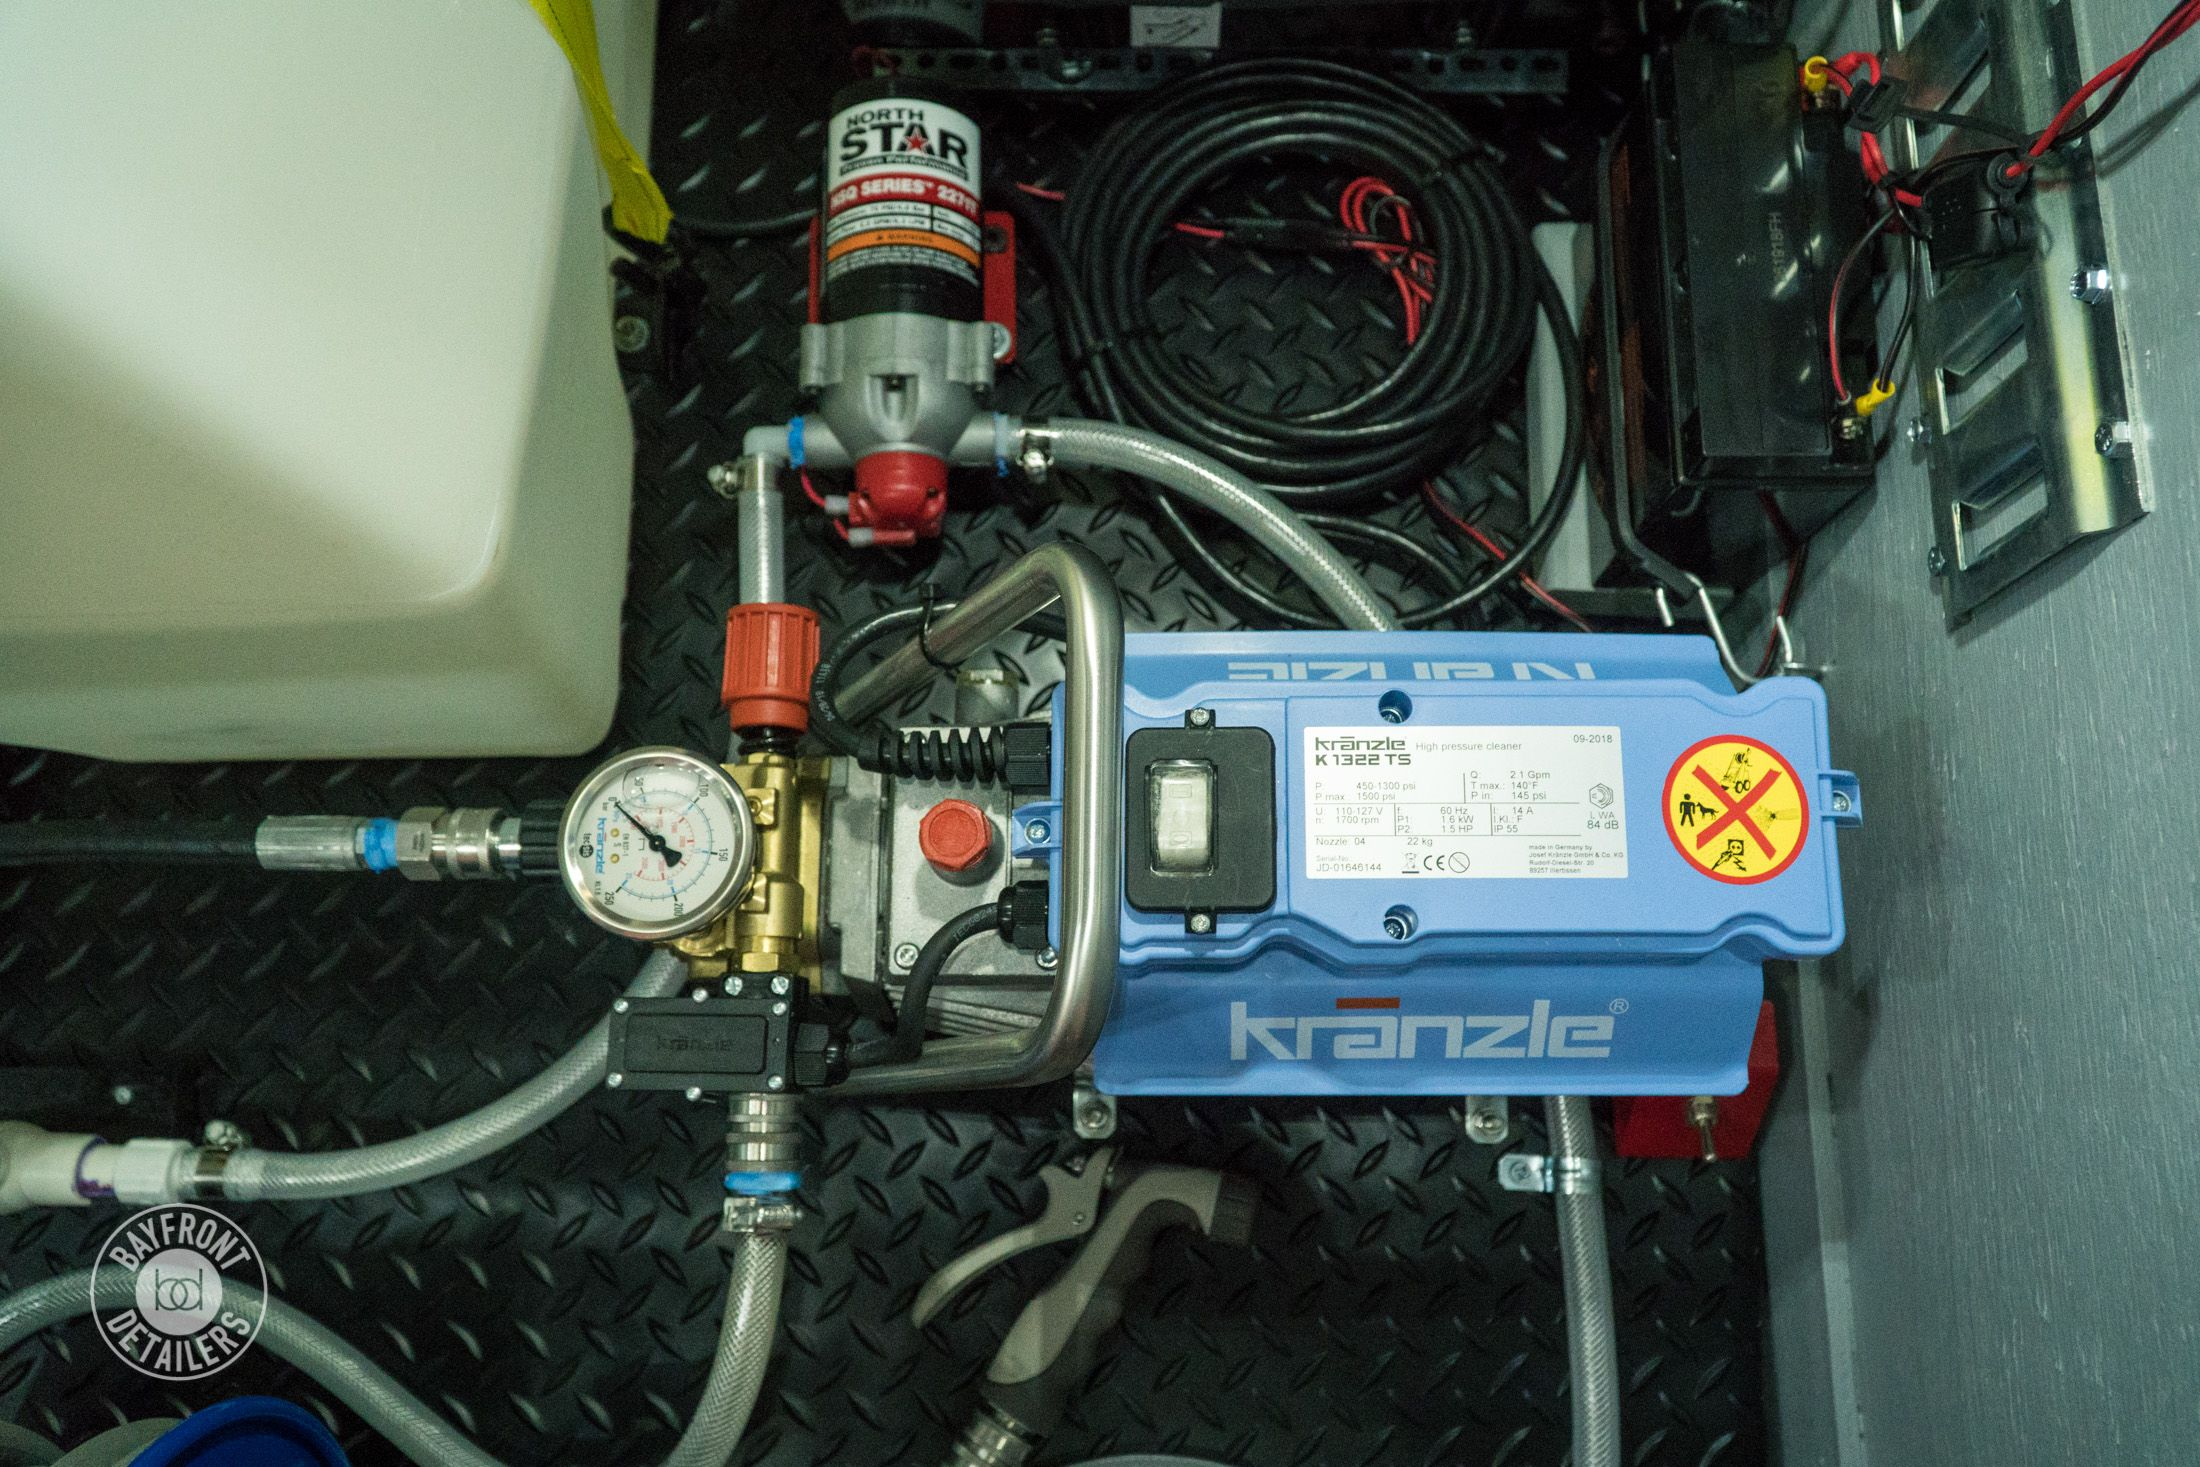 Kranzle K1322TS pressure washer, water pump and deep cycle battery